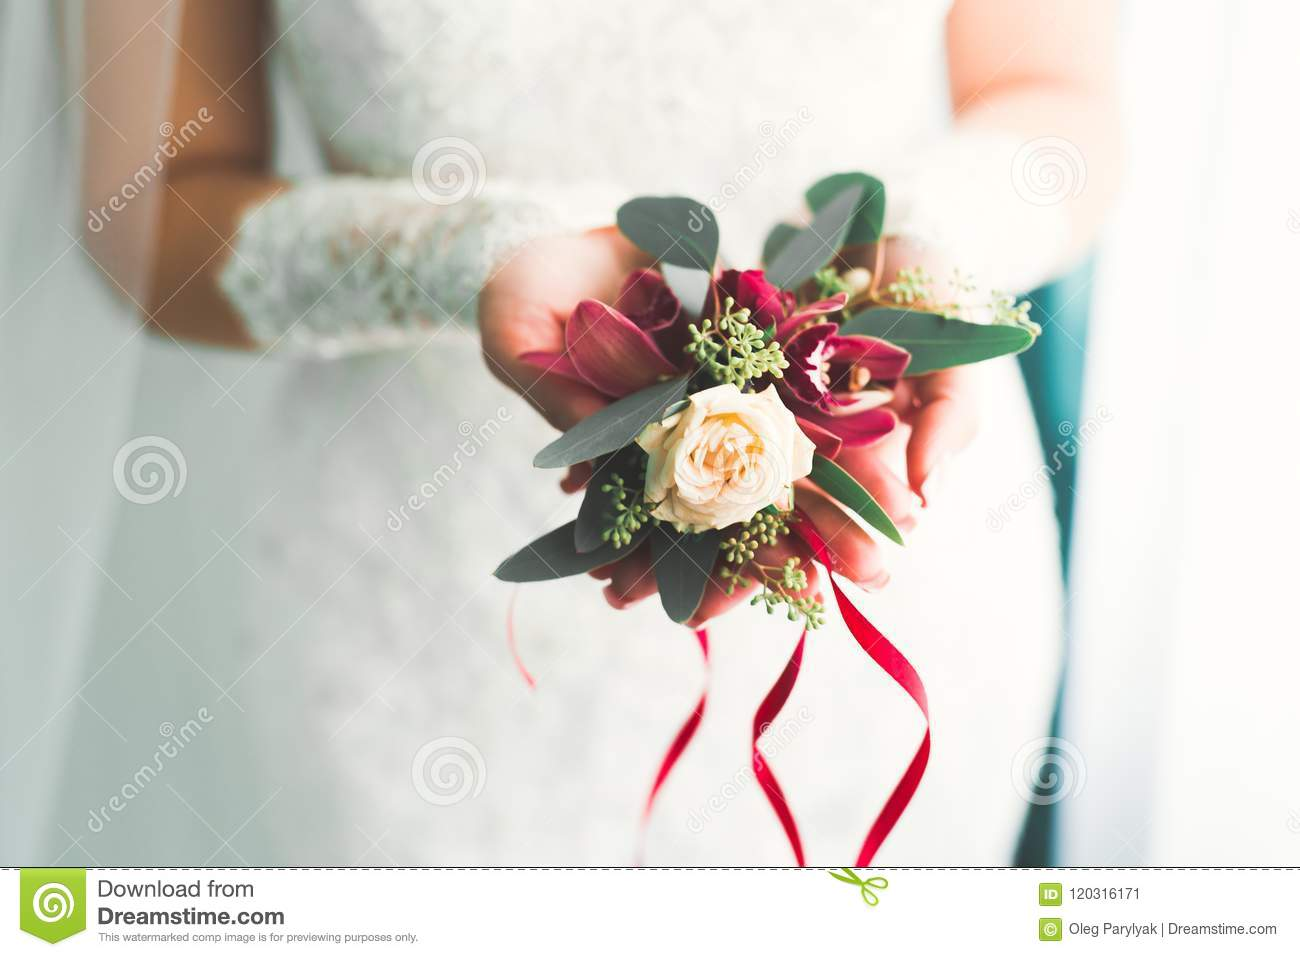 Bride holding big and beautiful wedding bouquet with flowers stock download bride holding big and beautiful wedding bouquet with flowers stock image image of austin izmirmasajfo